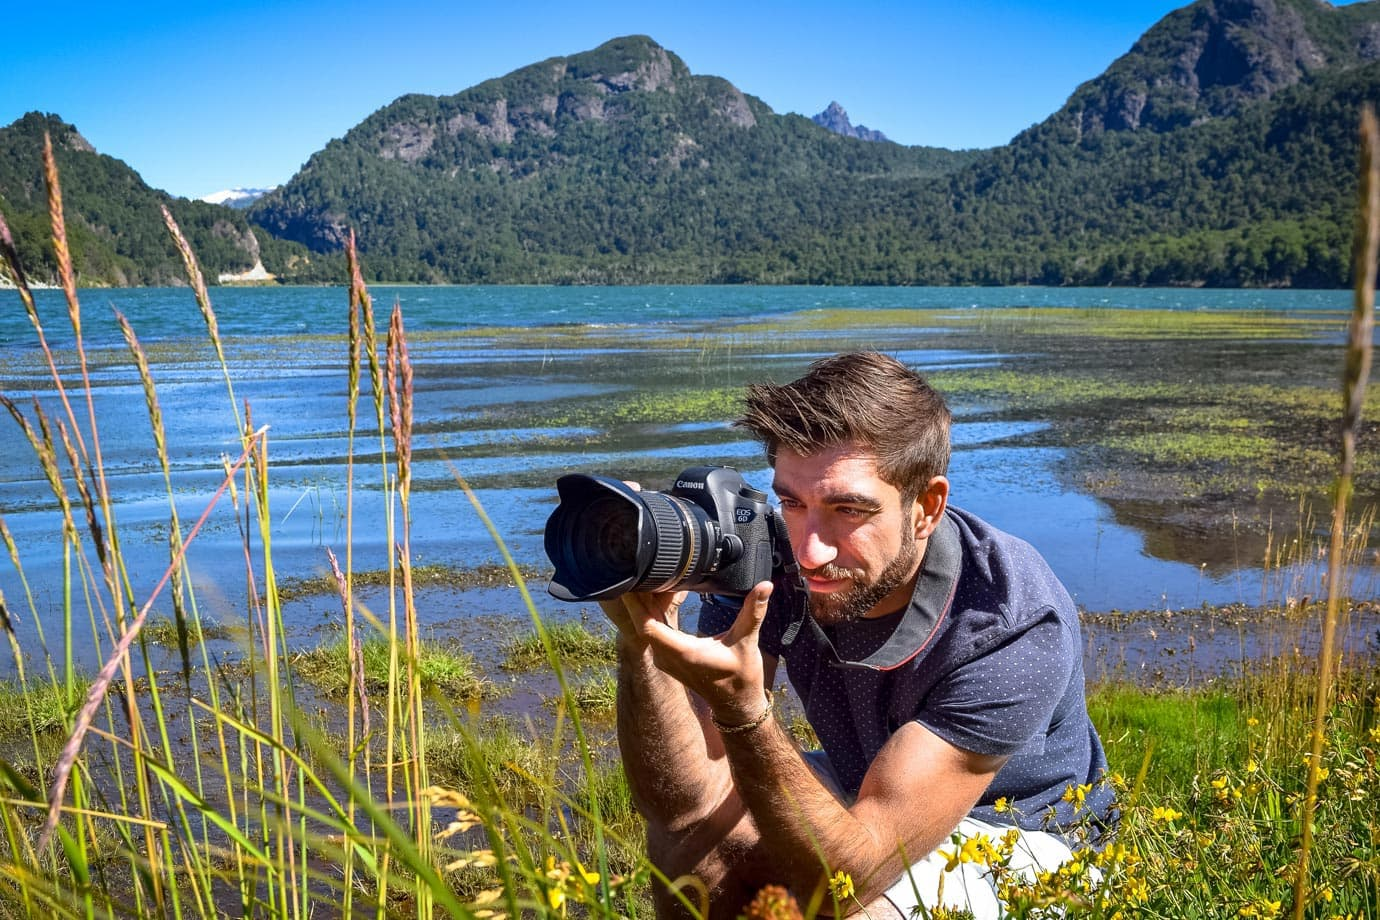 The Best Camera Gear for Travelling